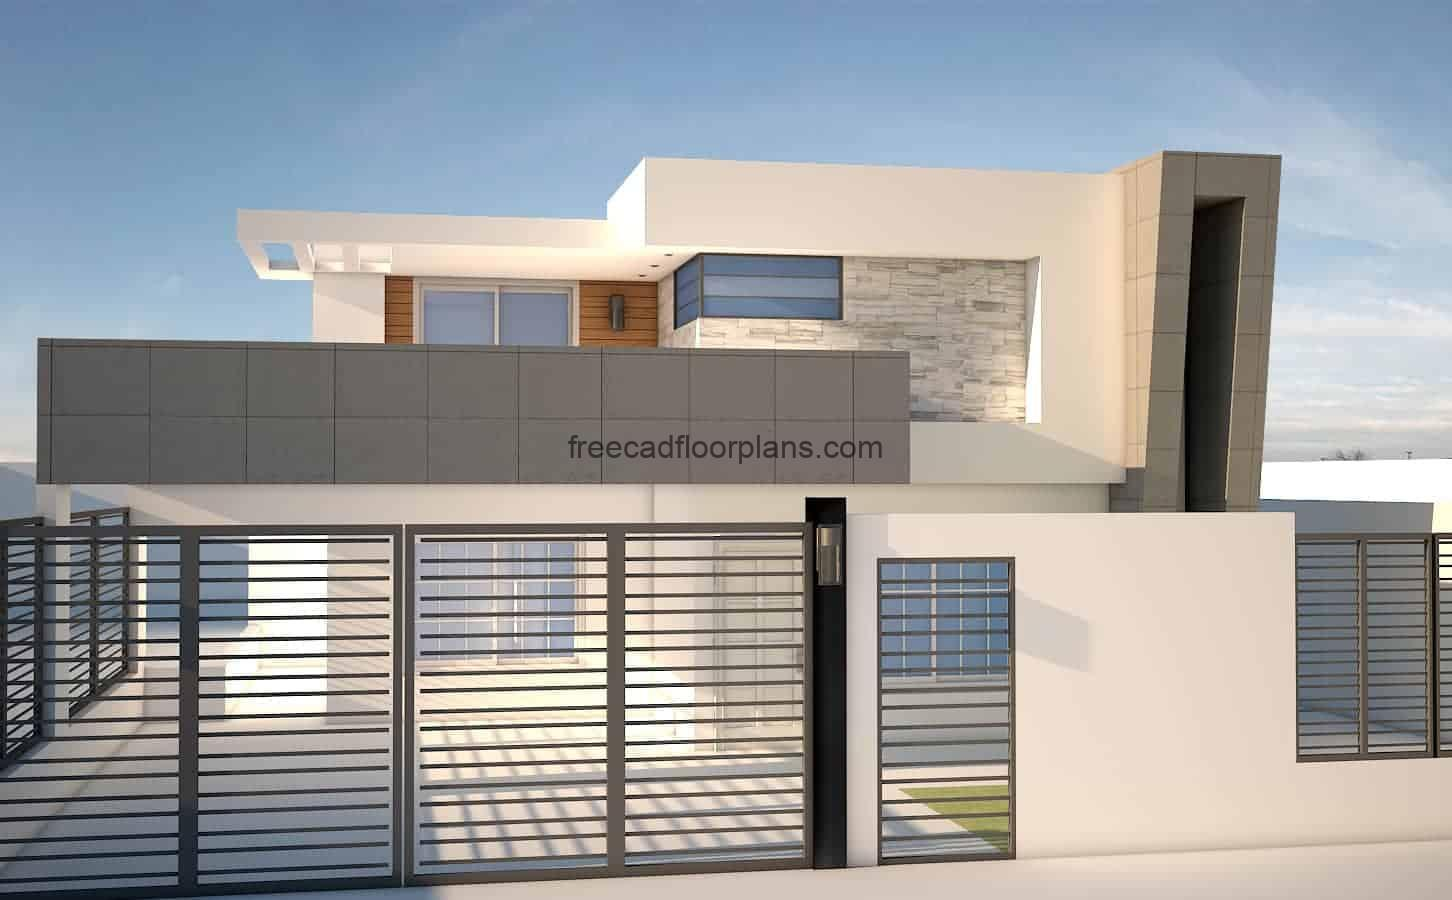 Architectural project, plans in format of autocad DWG, of residence with minimalist style, the plans have blocks of autocad, architectural plant, dimensioned, structural, sections and details of foundation